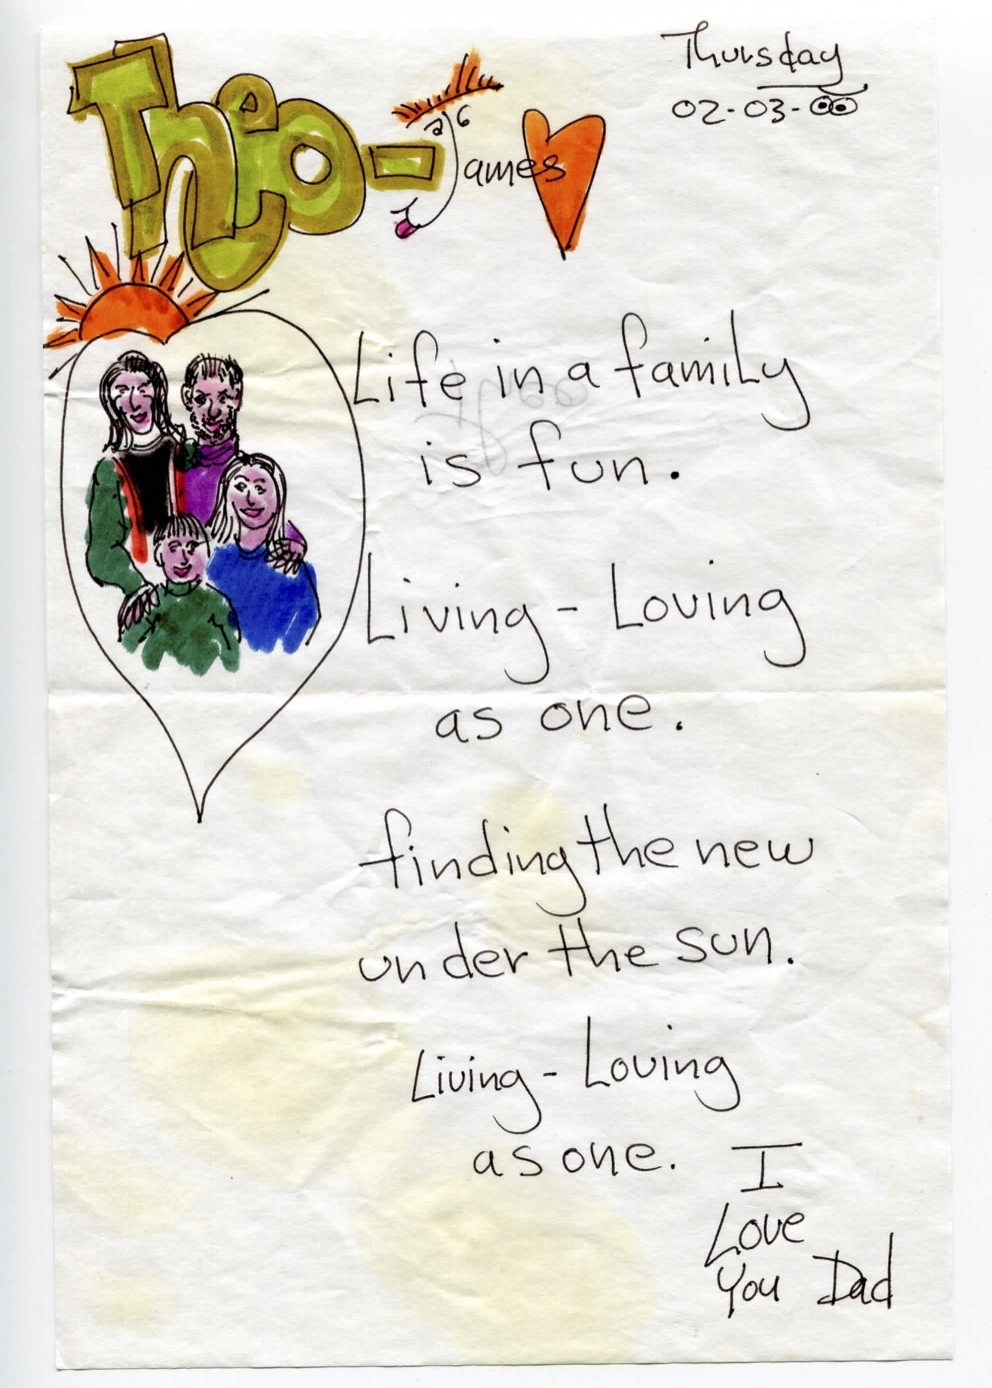 Life in a family is fun. Living - Loving as one. Finding the new under the sun. Living - Loving as one. I love you.